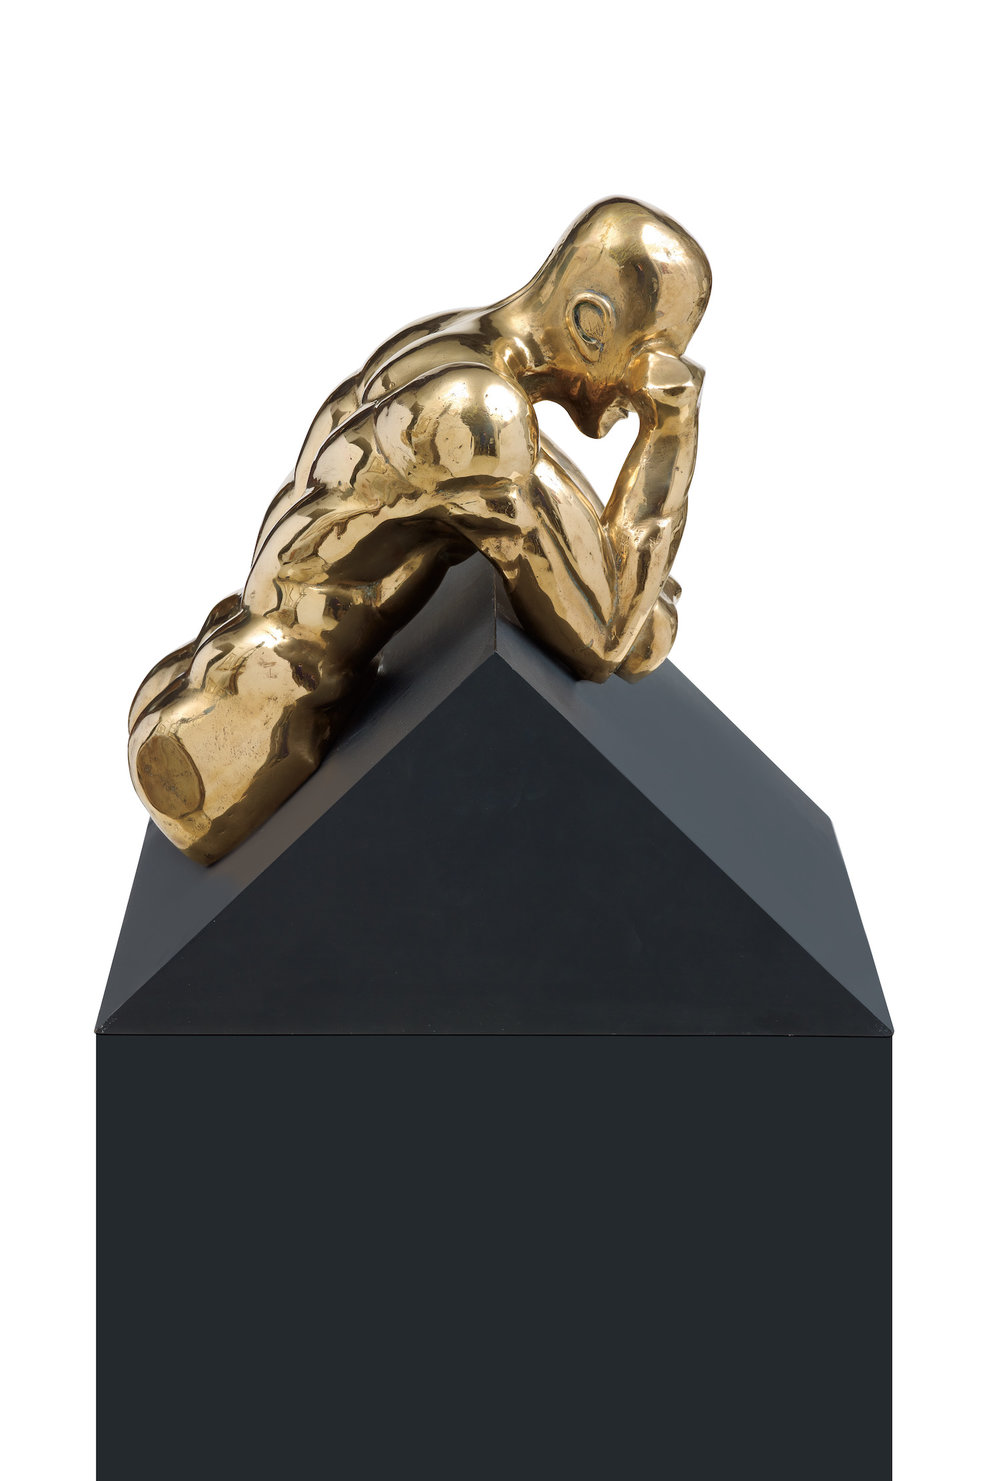 Thinking Man Bronze.jpg